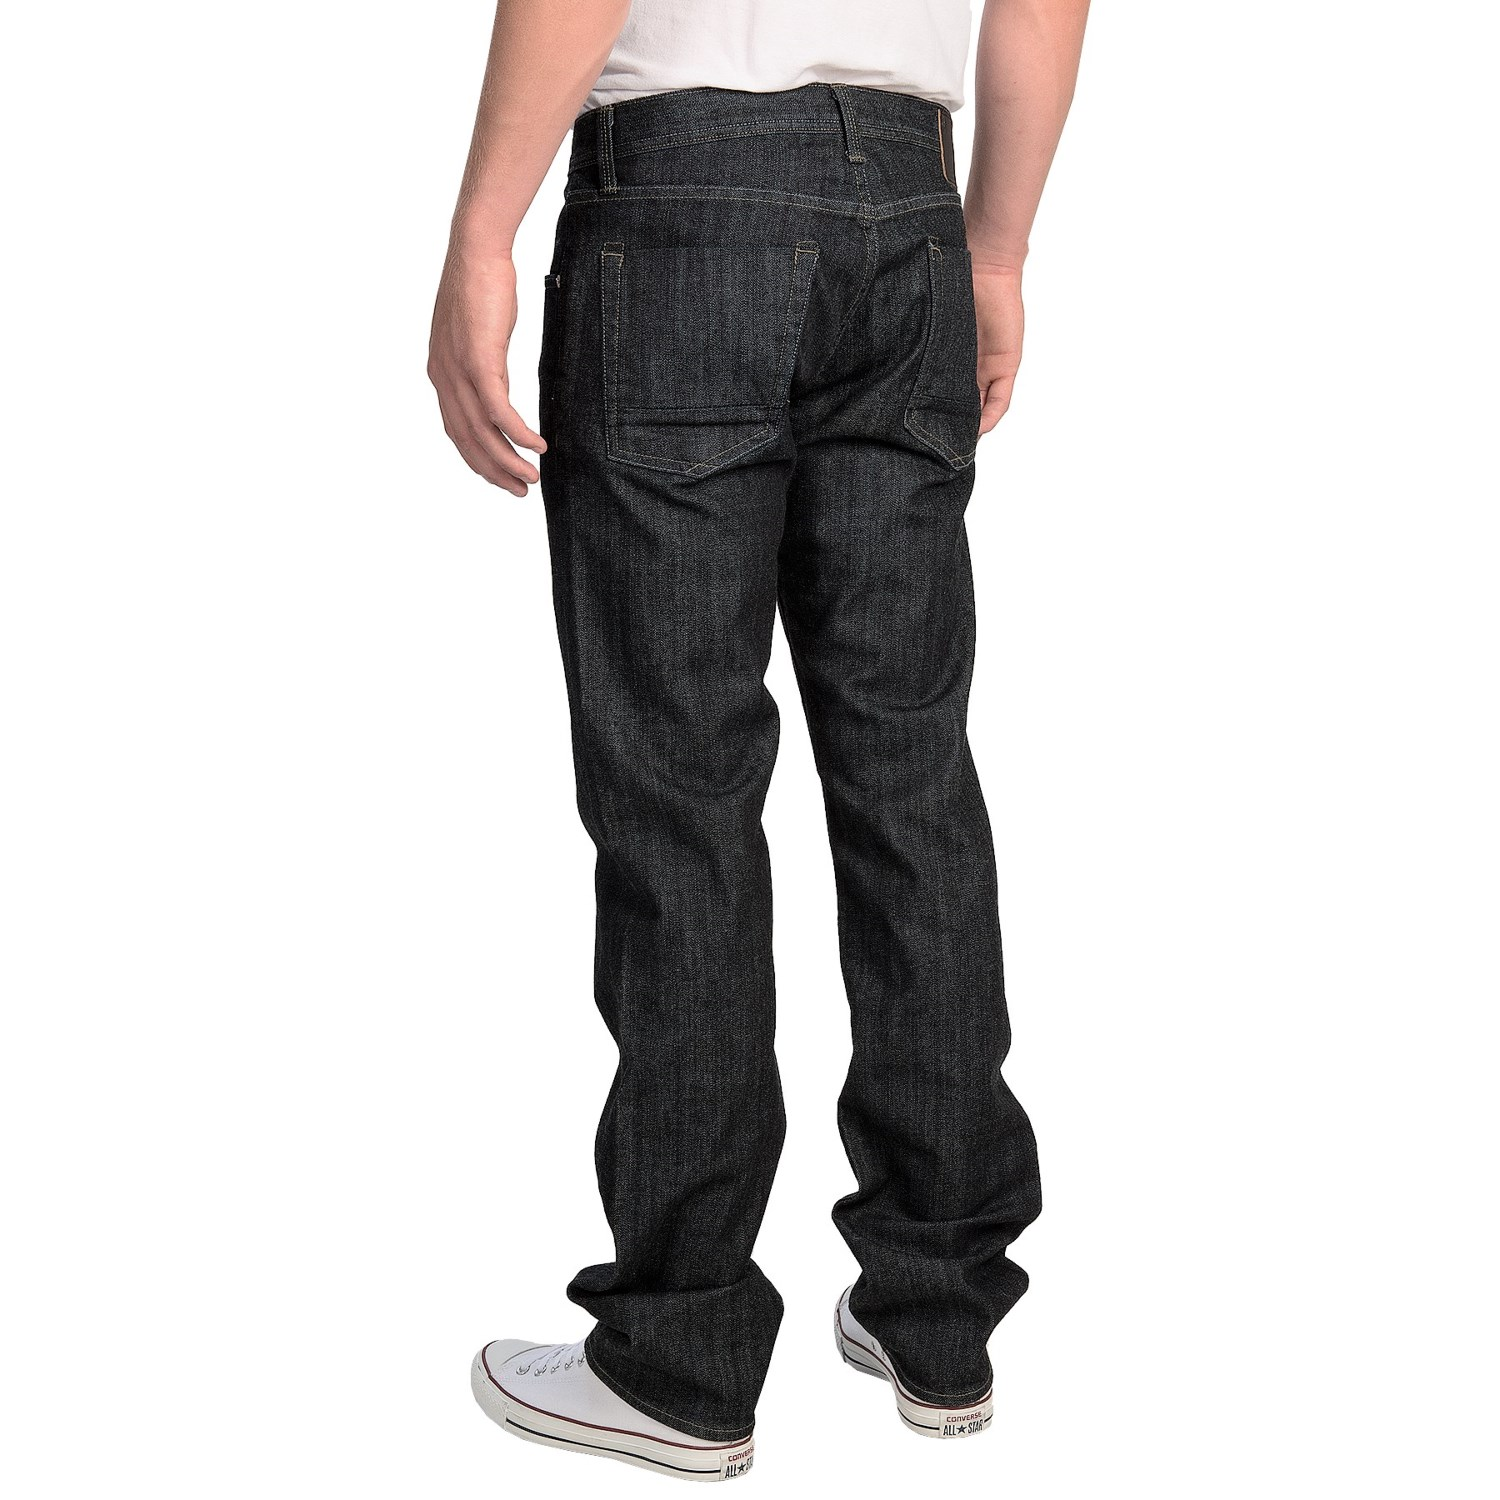 Silver Star Jeans - Jeans Am